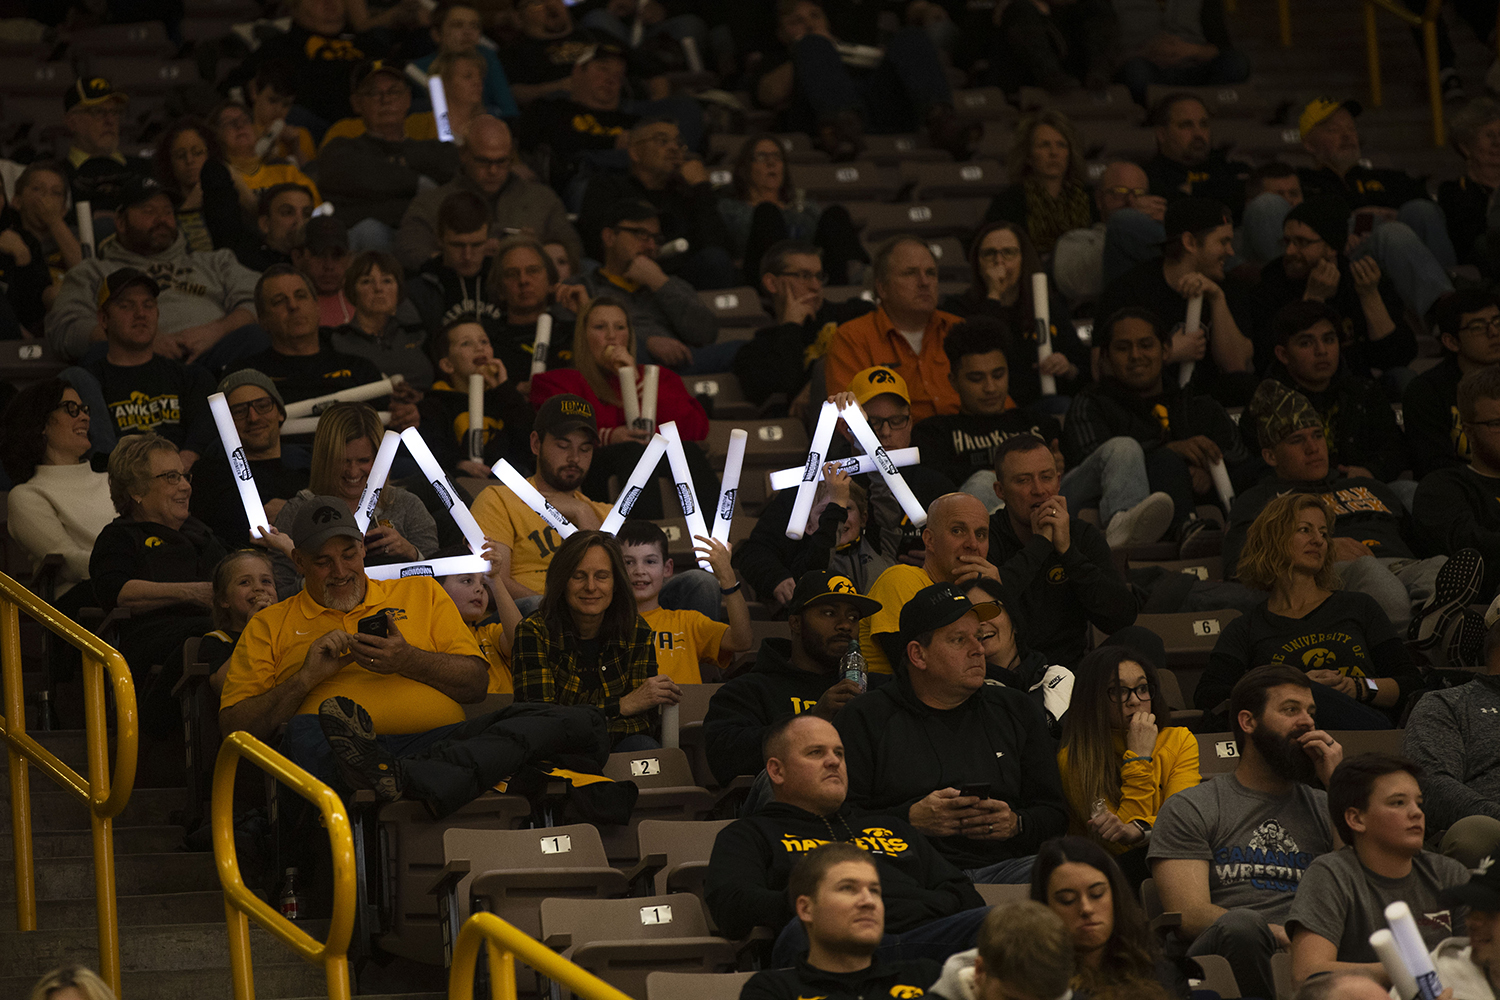 Iowa+fans+hold+glow+sticks+to+spell+%22IOWA%22+during+the+Iowa%2FRutgers+wrestling+meet+at+Carver-Hawkeye+Arena+on+Friday%2C+January+18%2C+2019.+The+Hawkeyes+defeated+the+Scarlet+Knights%2C+30-6.+